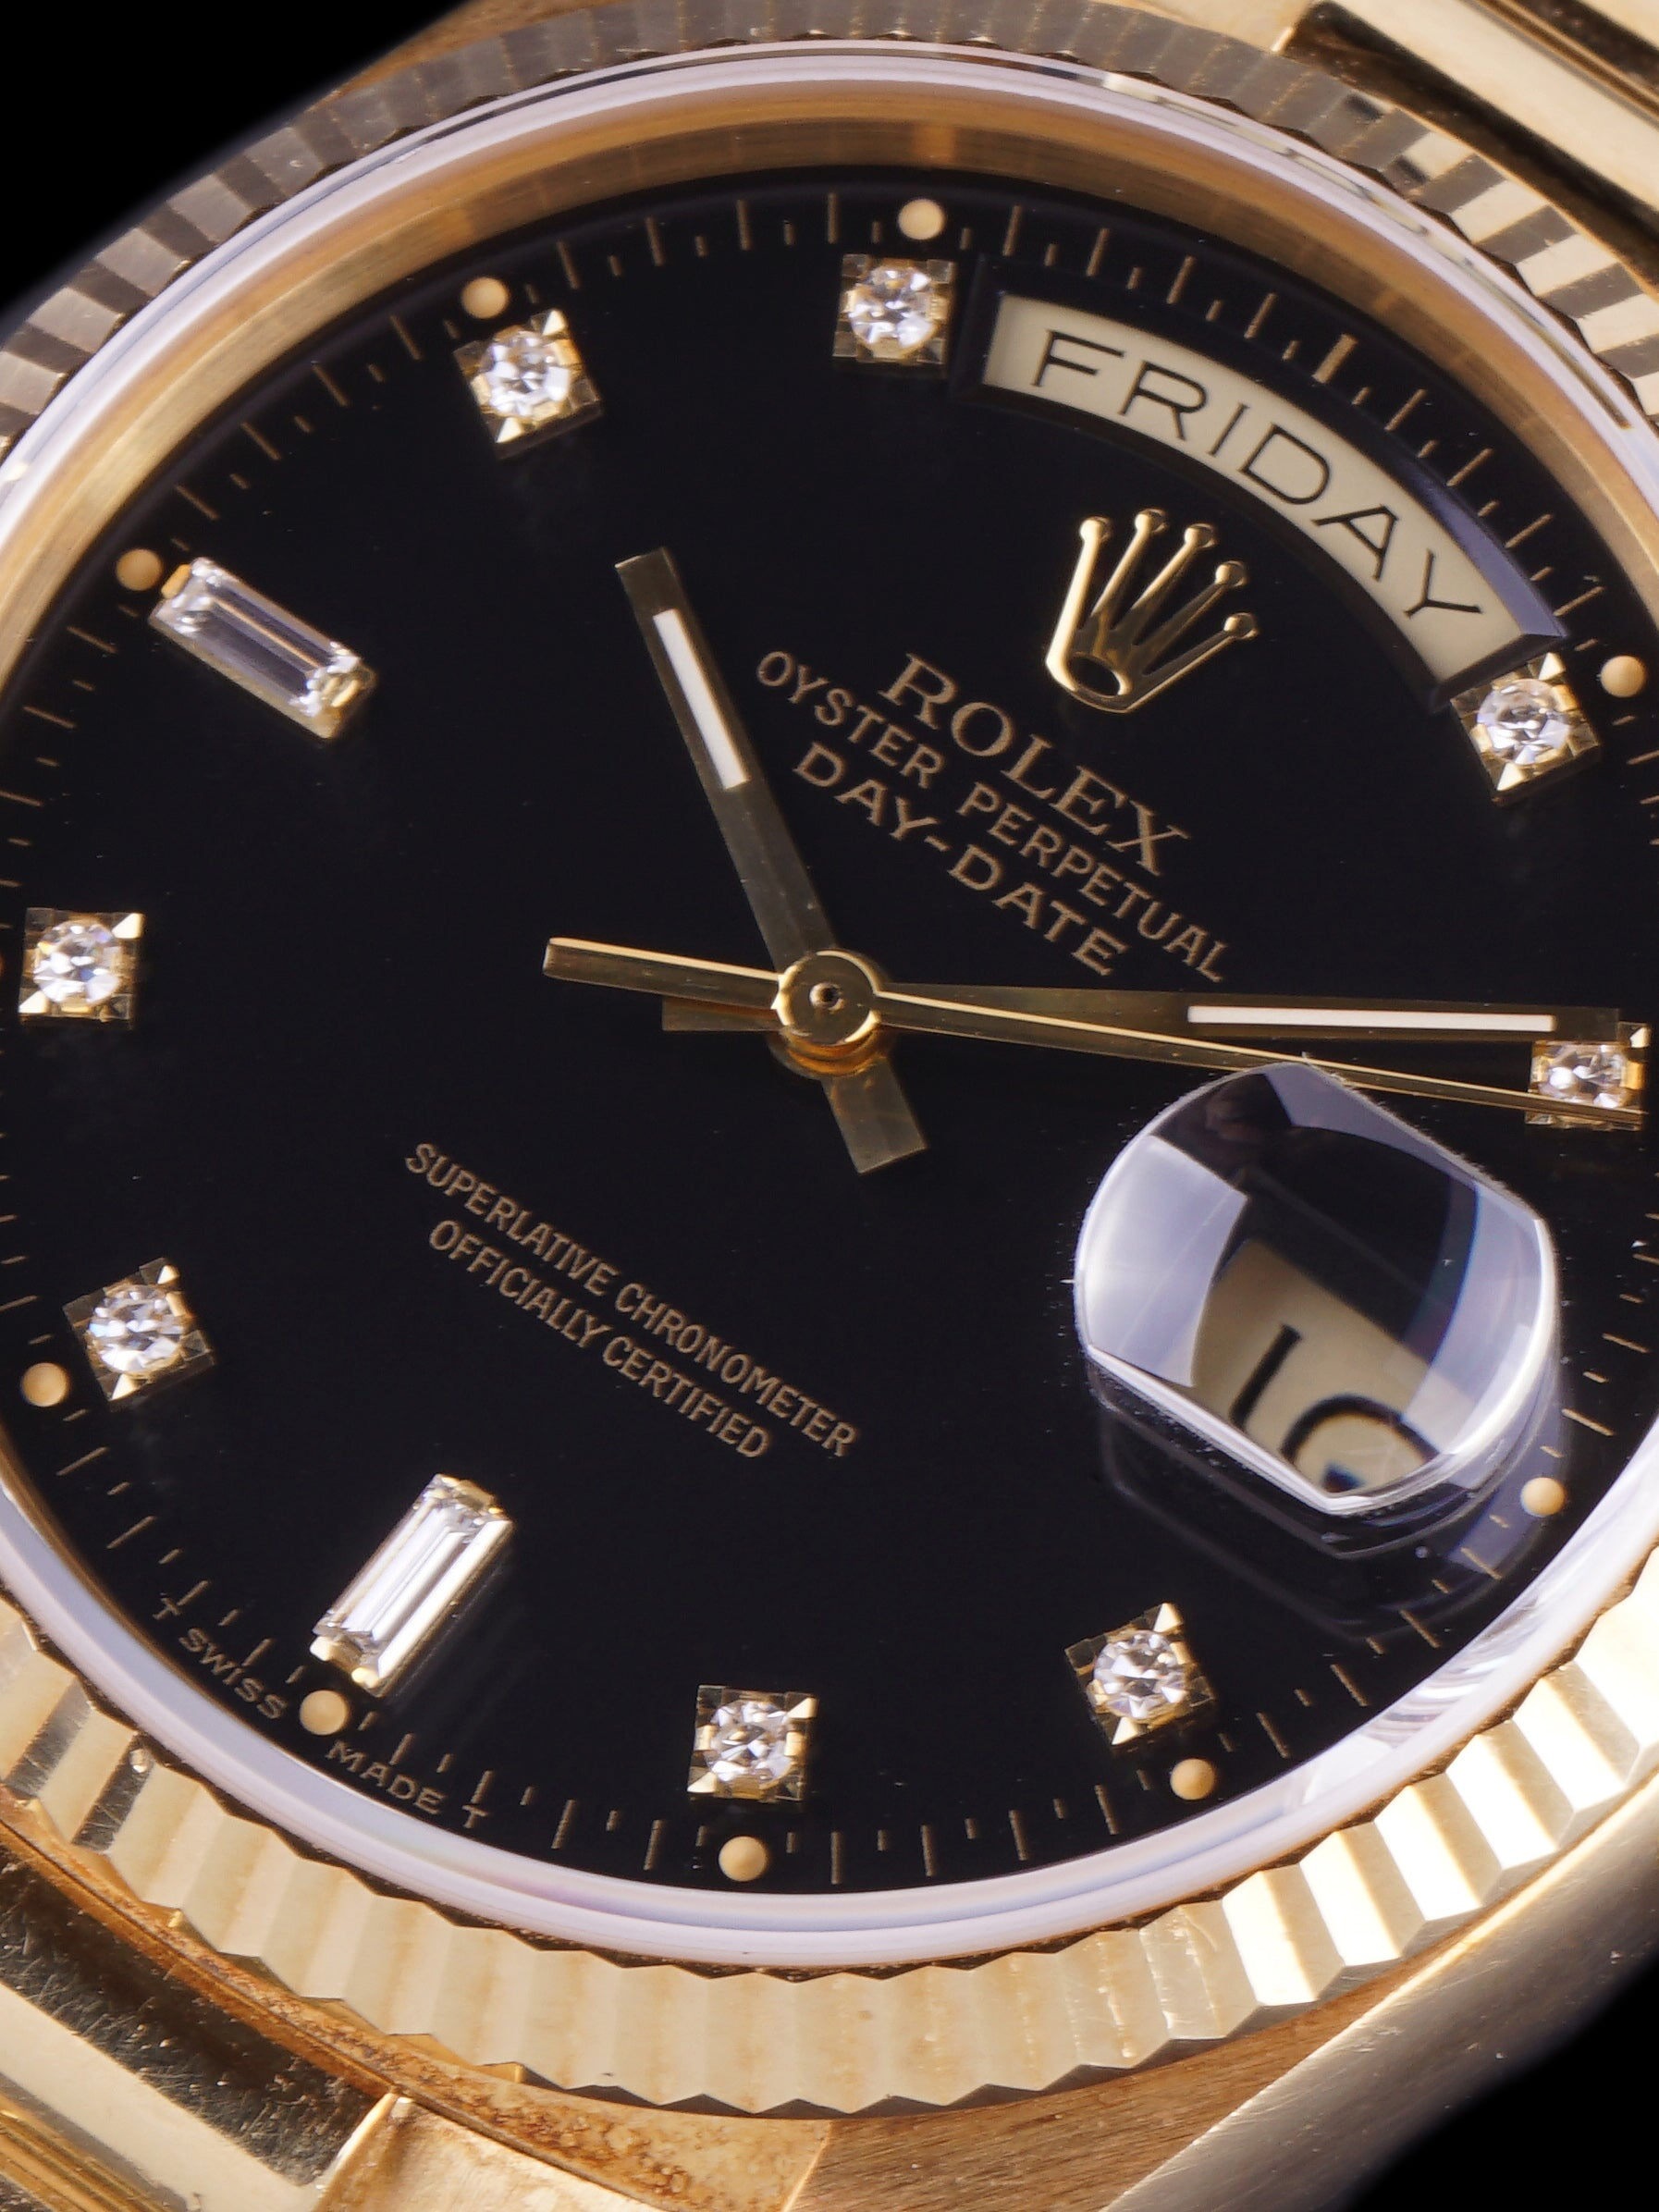 **Unpolished** 1987 Rolex Day-Date (Ref. 18038) Black Factory Diamond Dial With Box and Booklets